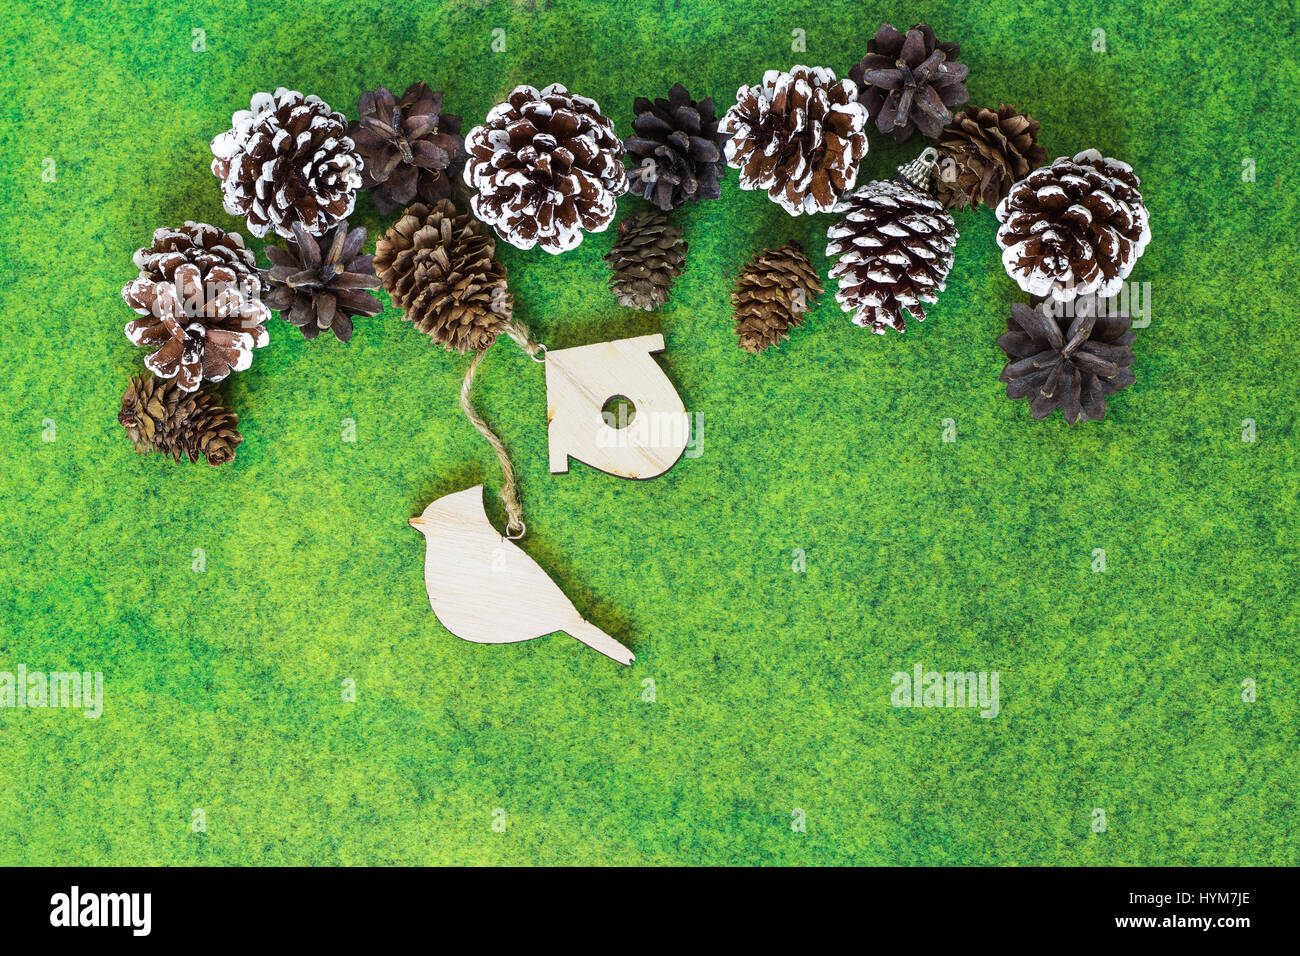 Pine and Fir cones with wooden ornaments on vibrant green felt background. Christmas greetings card background - Stock Image